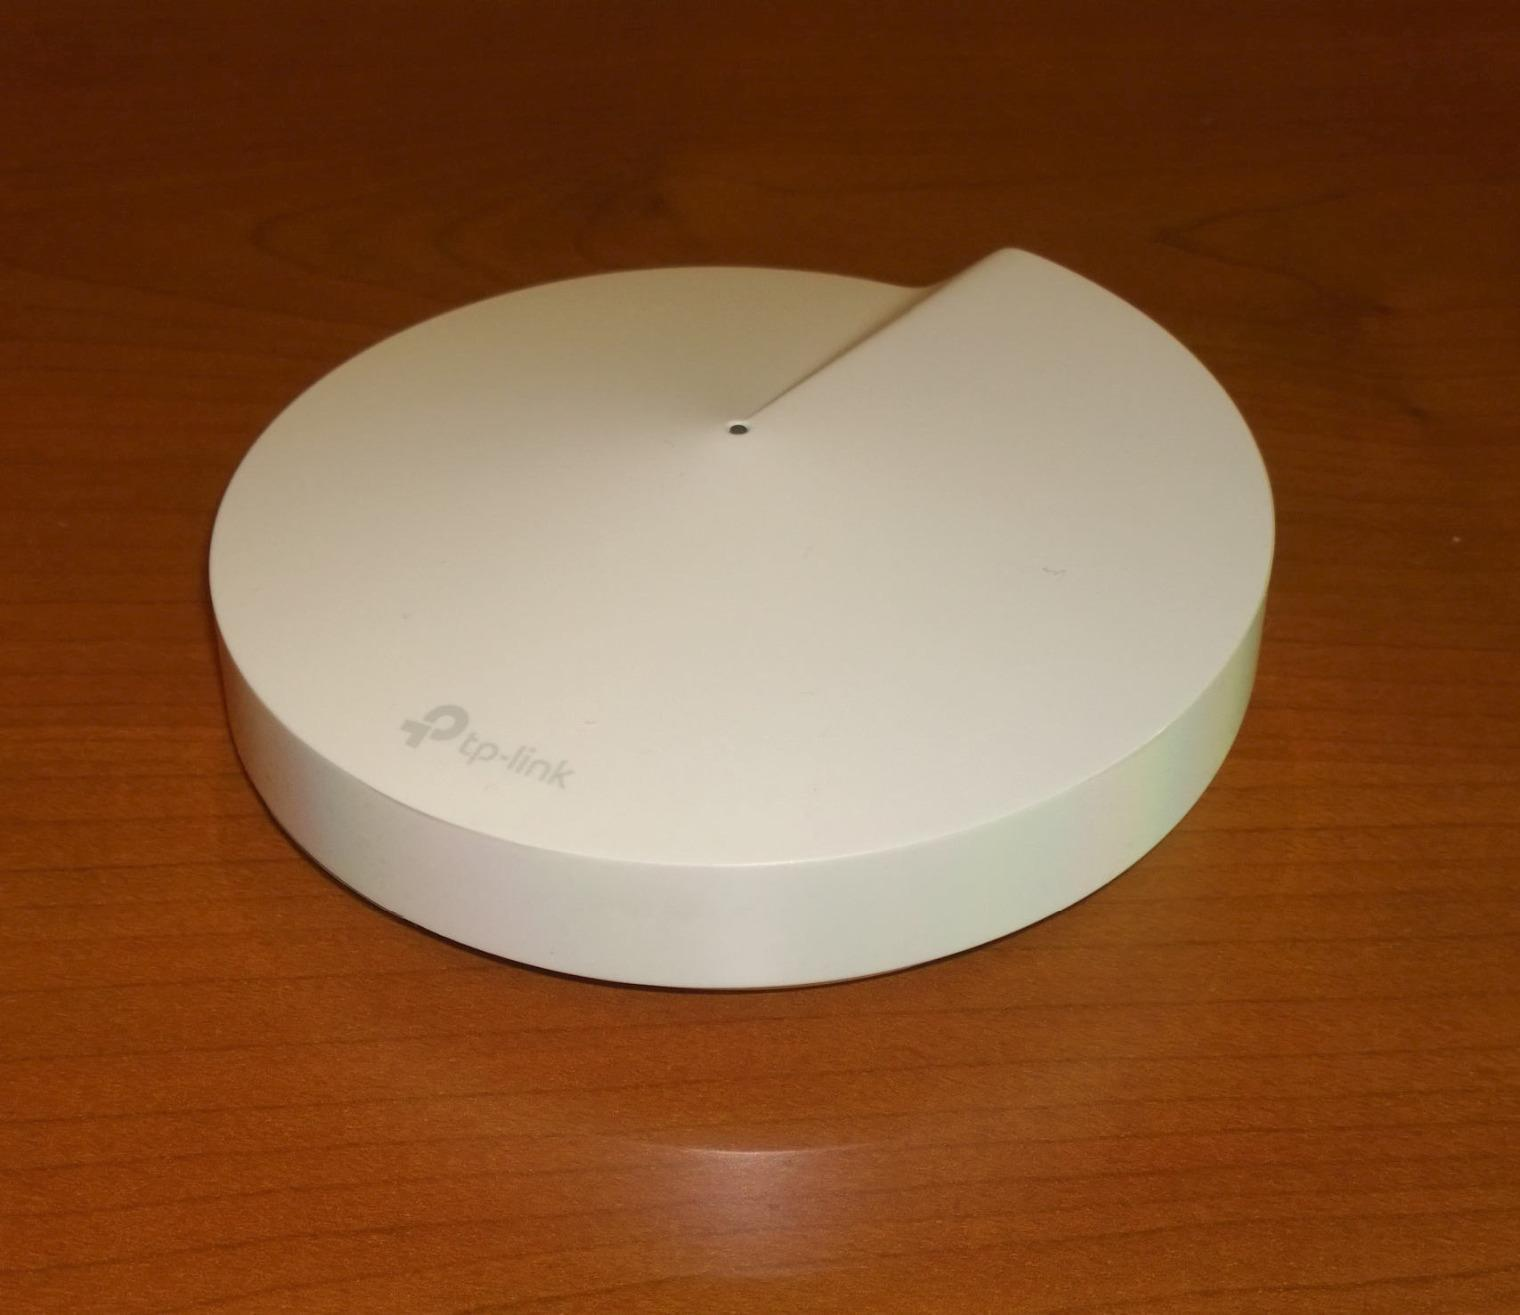 Recensione TP-link Deco M5 Whole-Home Router Dual-Band AC1300